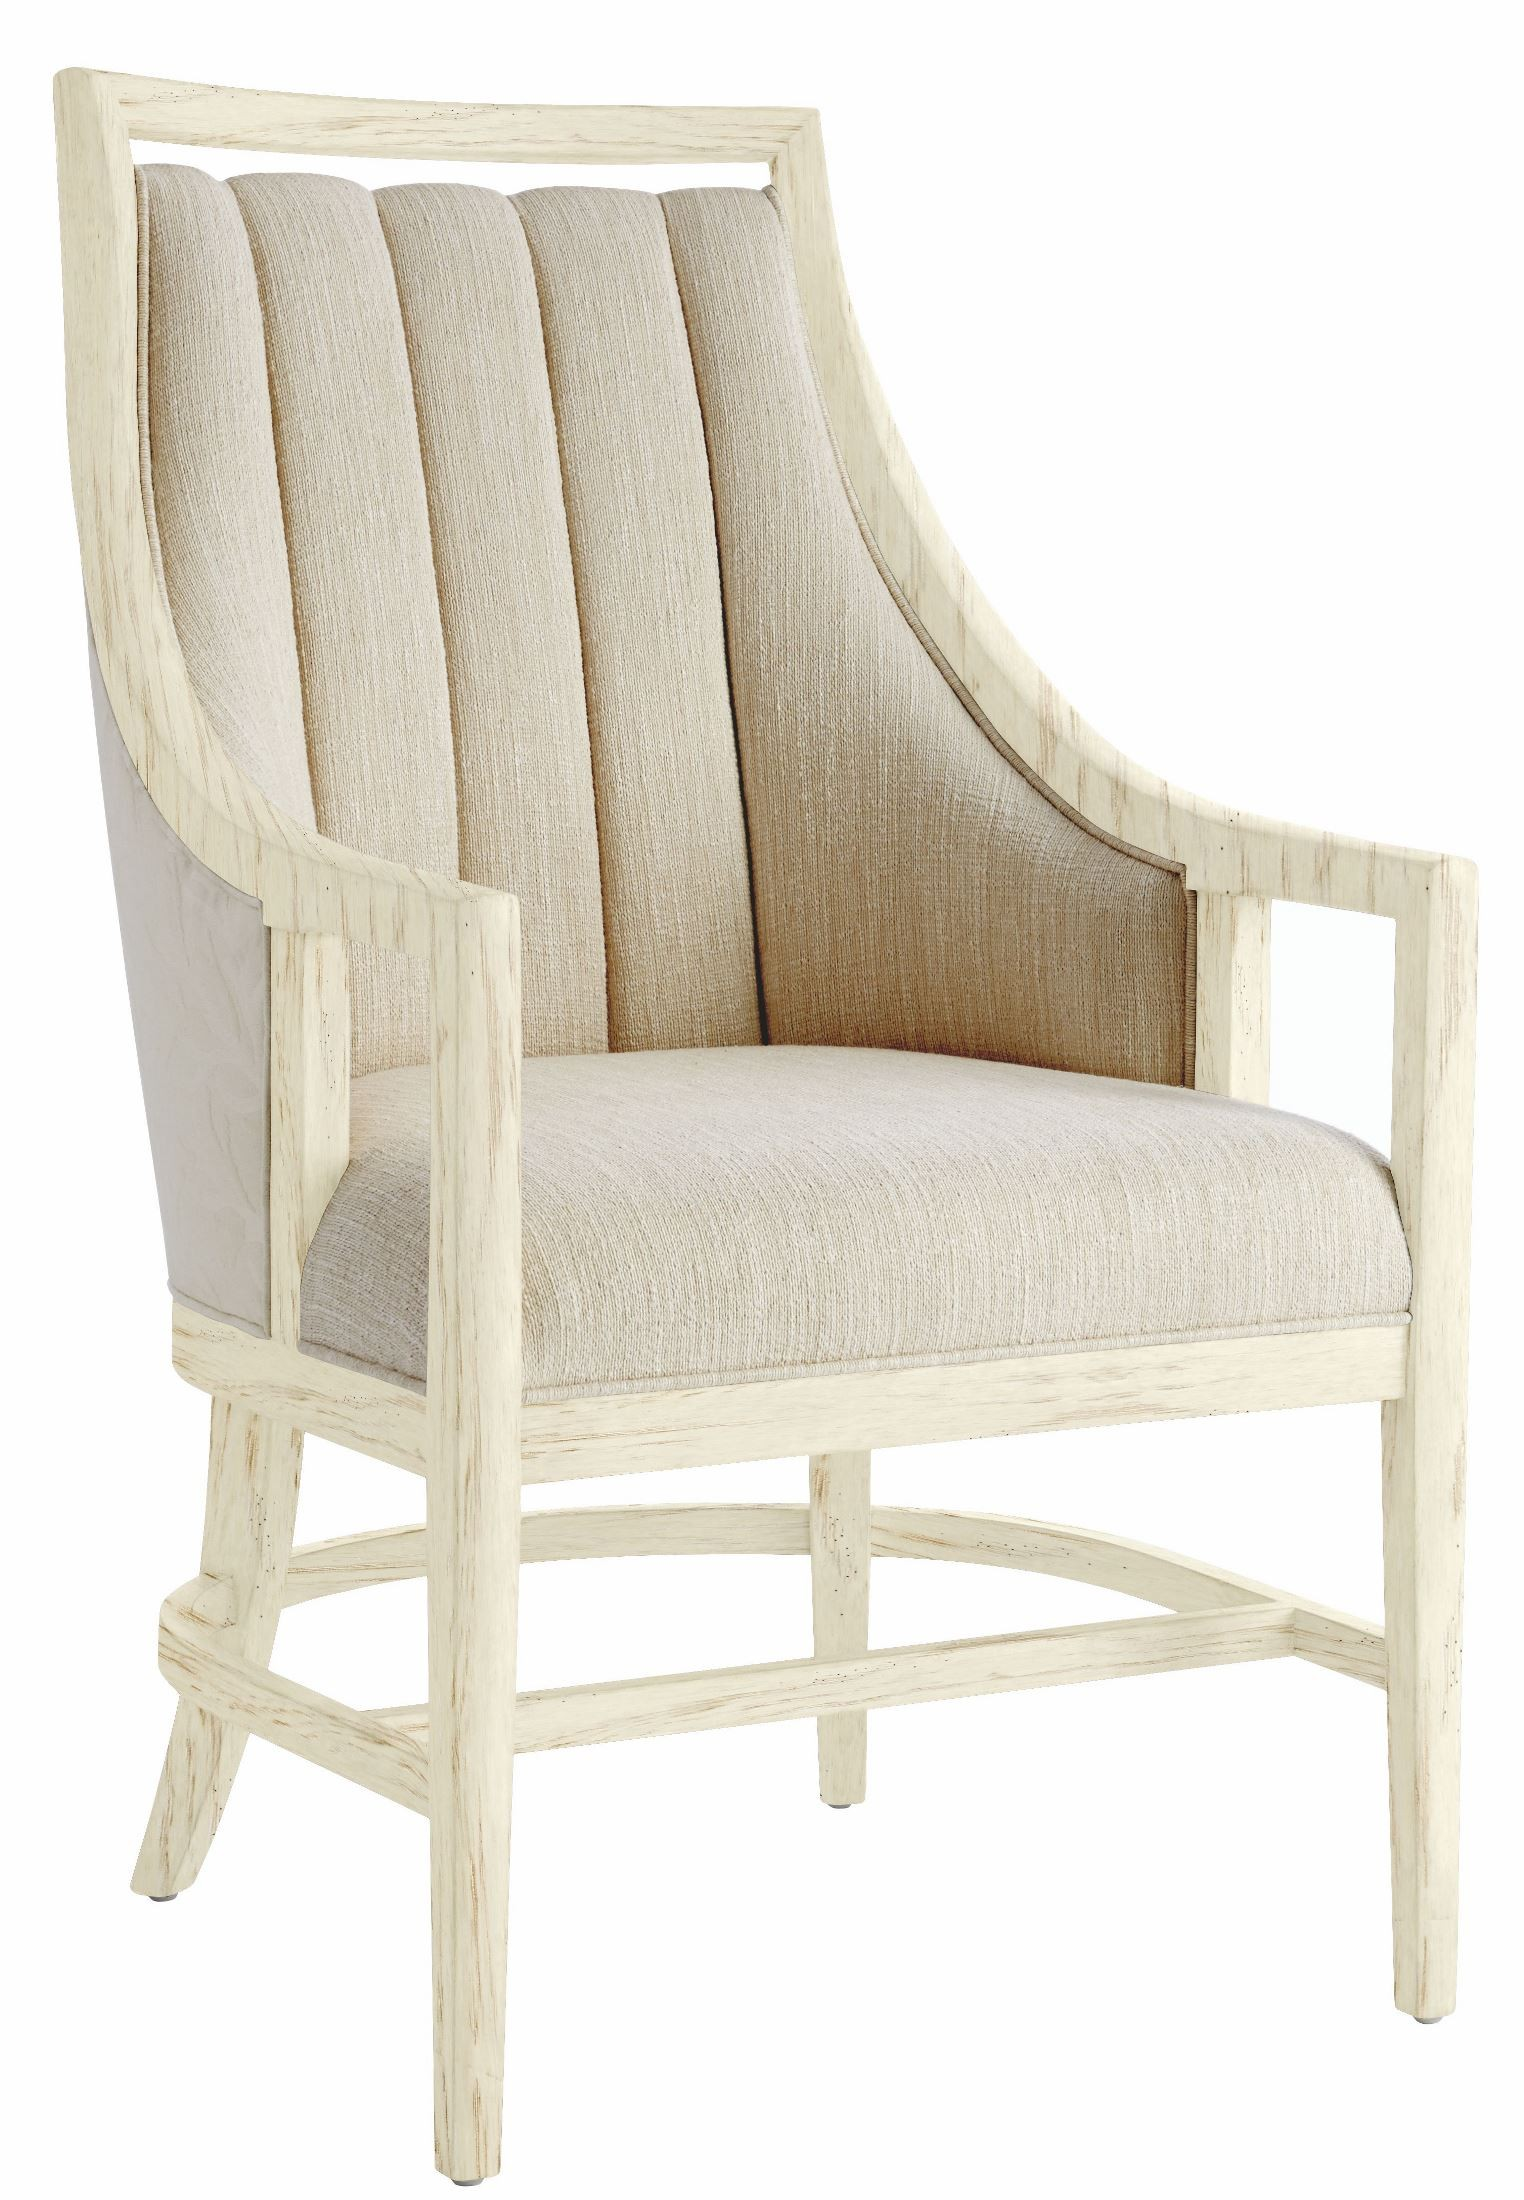 Coastal Living Resort Sailcloth By The Bay Host Chair From